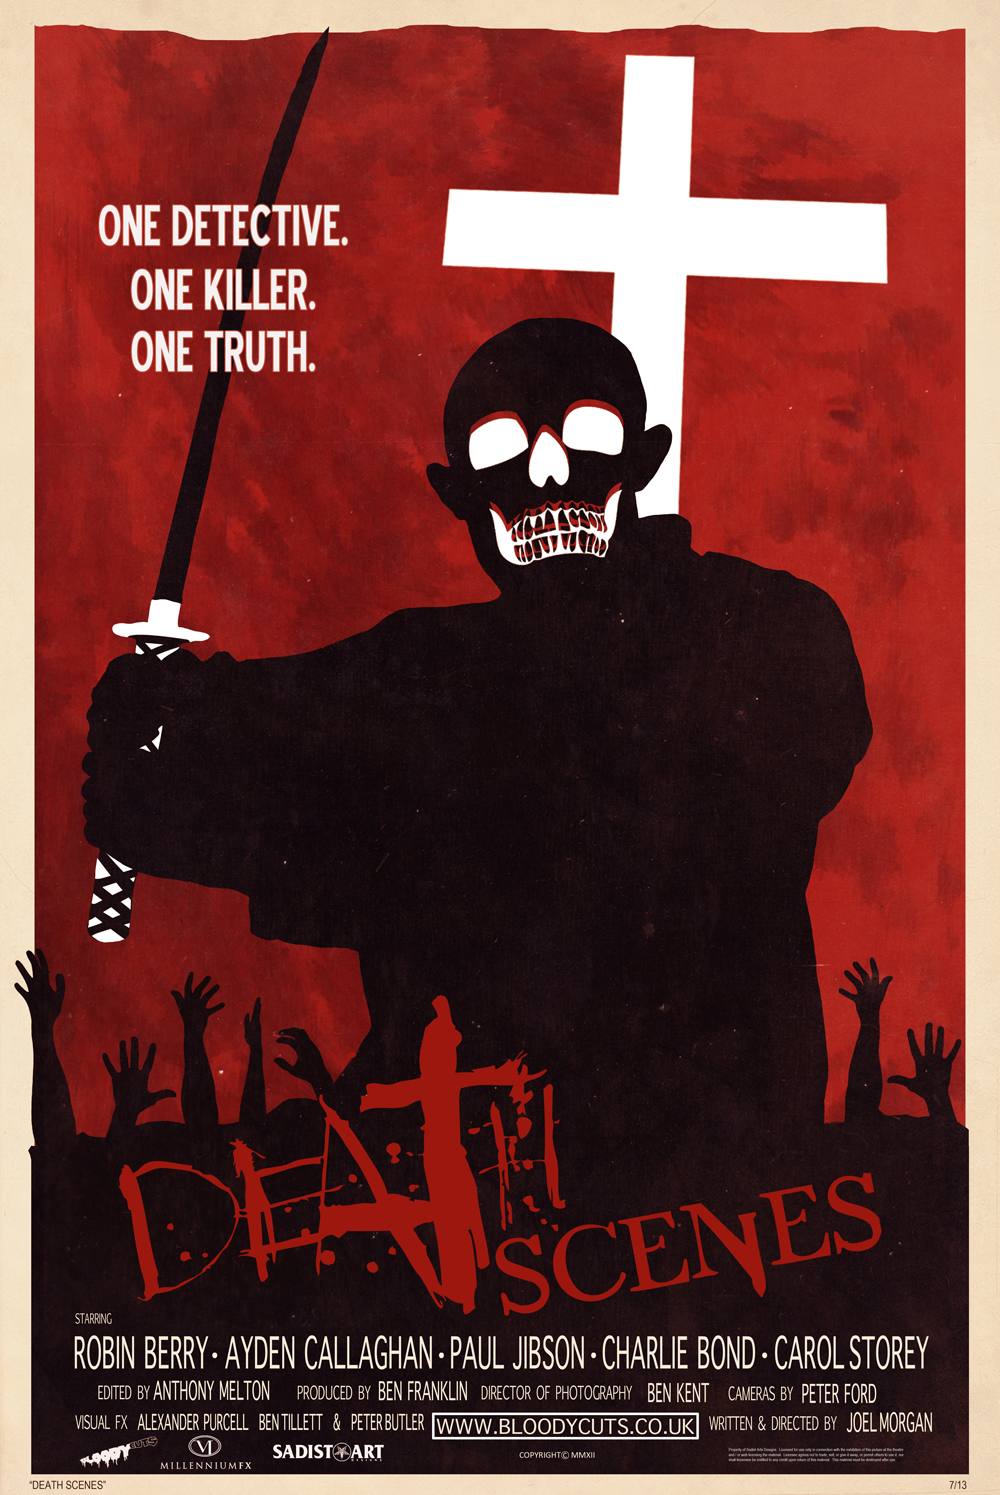 Death Scenes - Poster by Marc Schoenbach